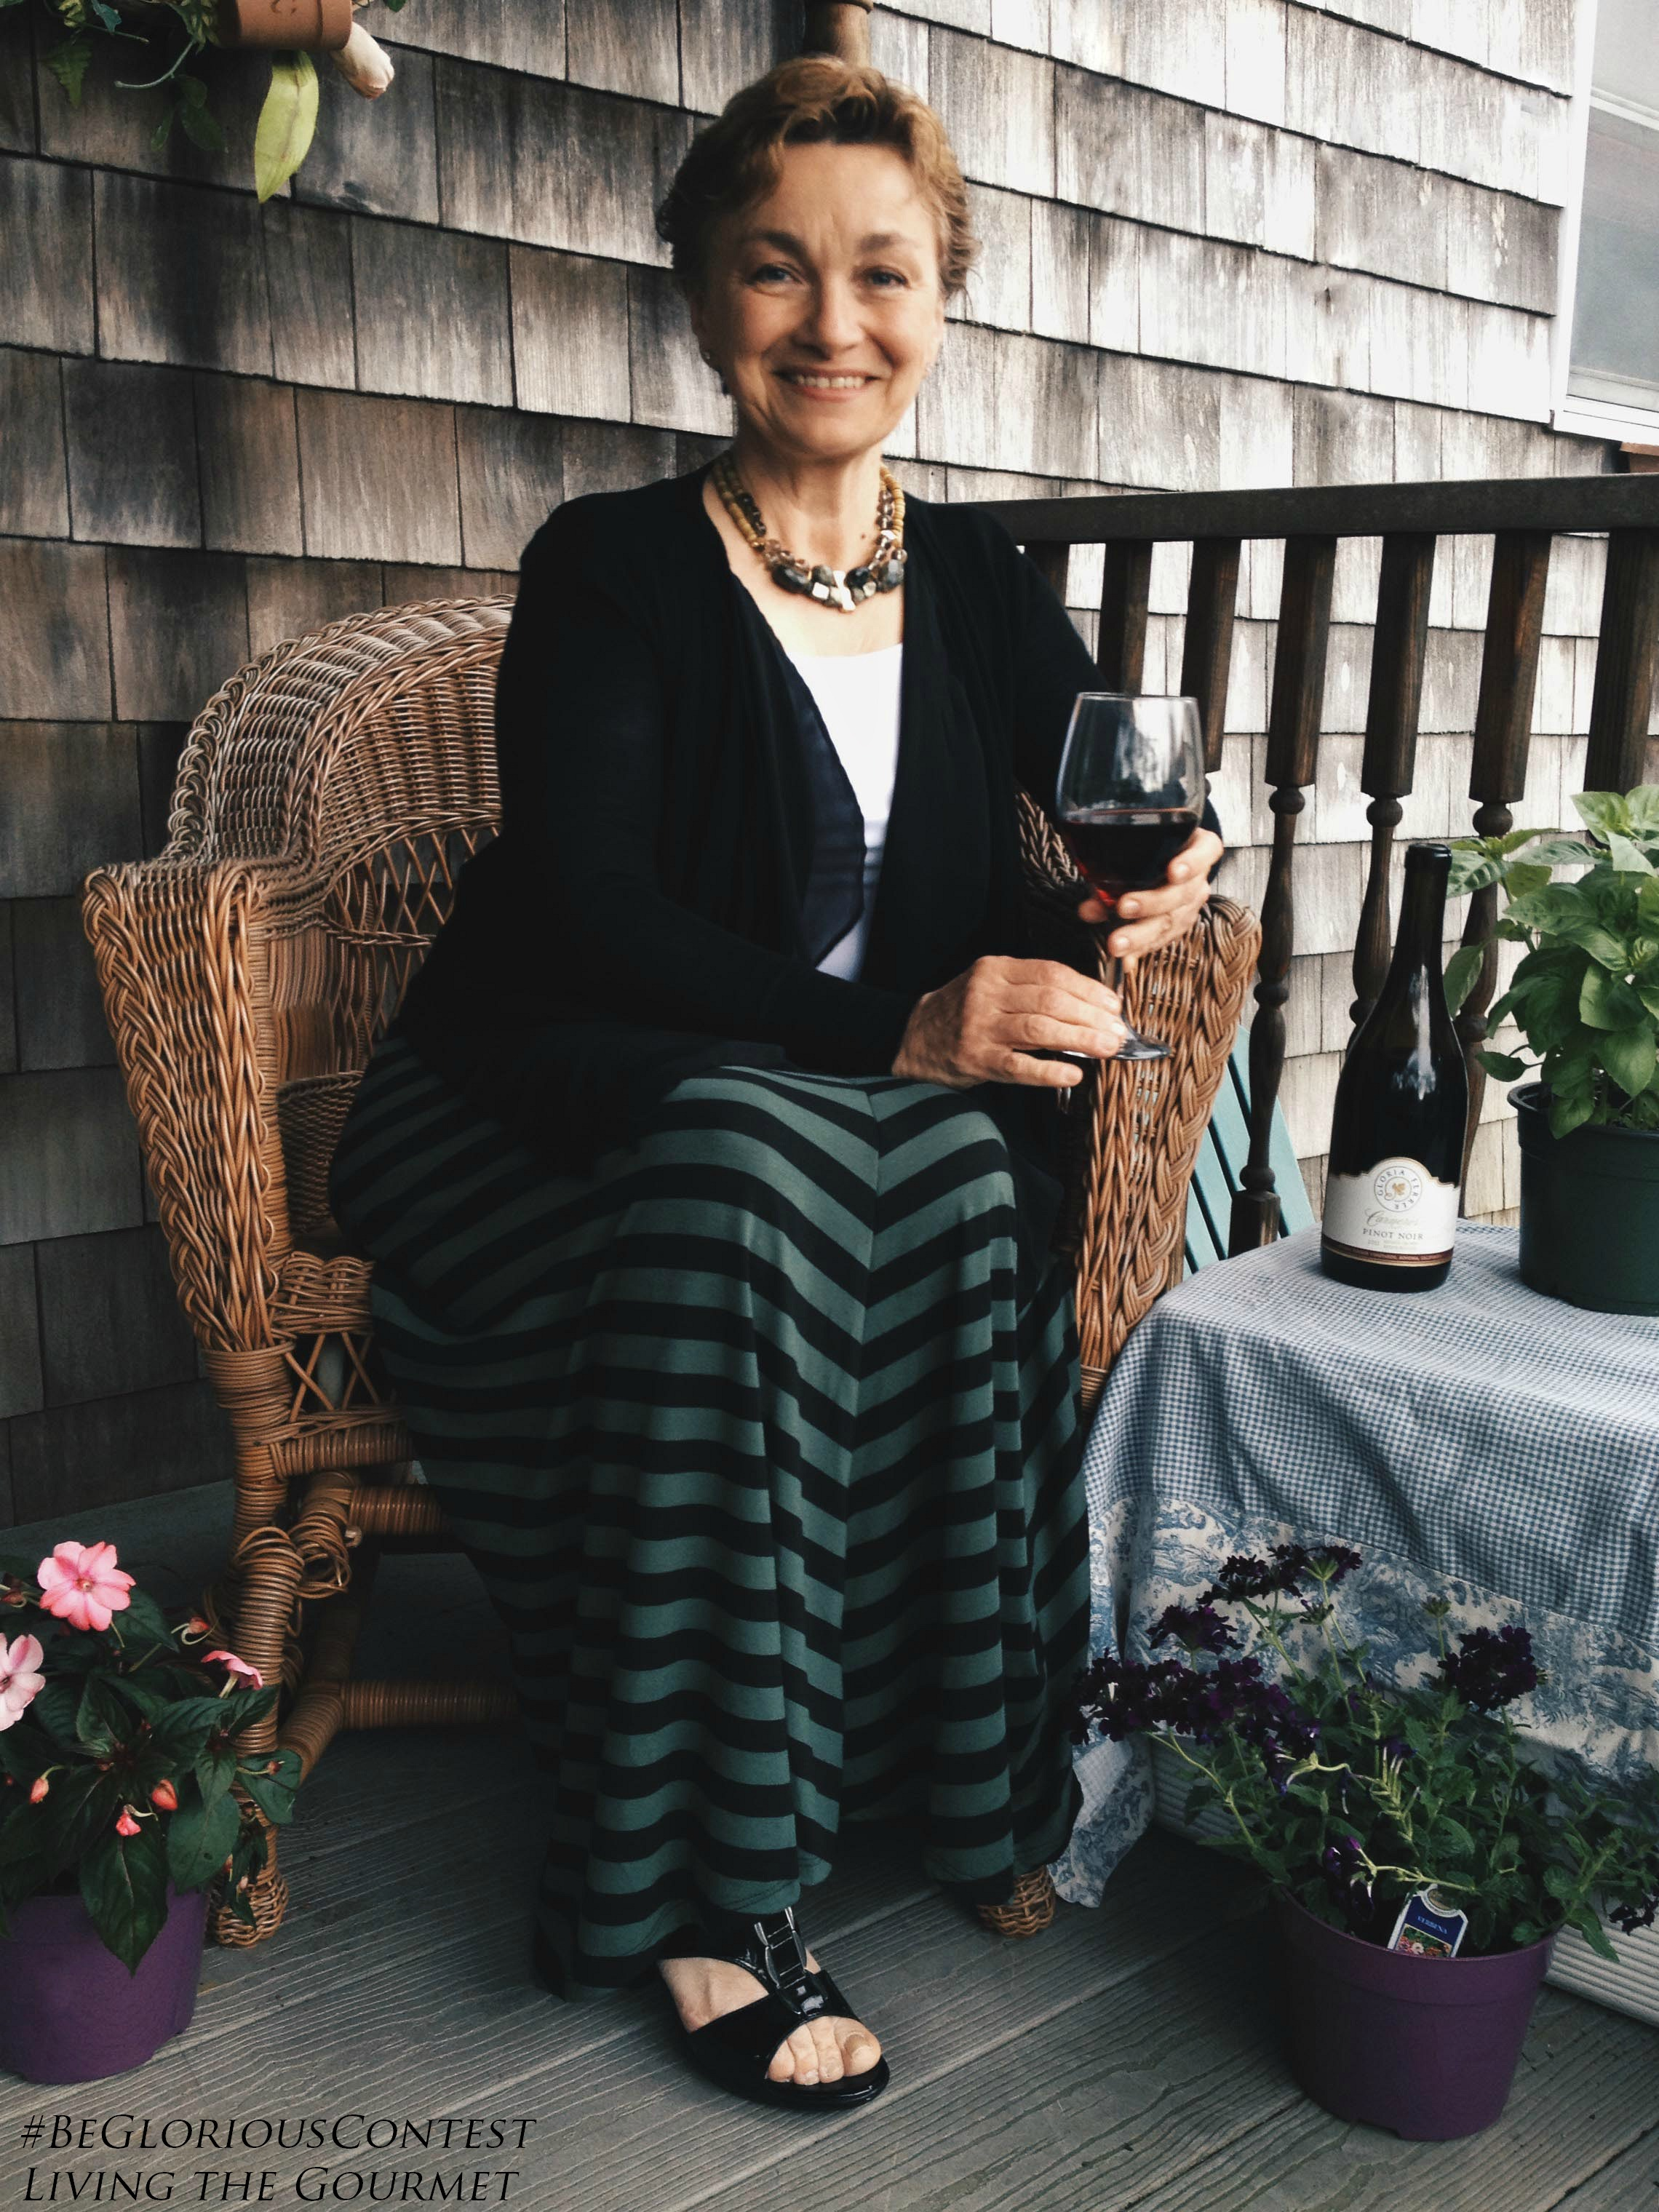 Living the Gourmet: A Fashionable Luncheon with Gloria Ferrer Wines |  #BeGloriousContest #CleverGirls